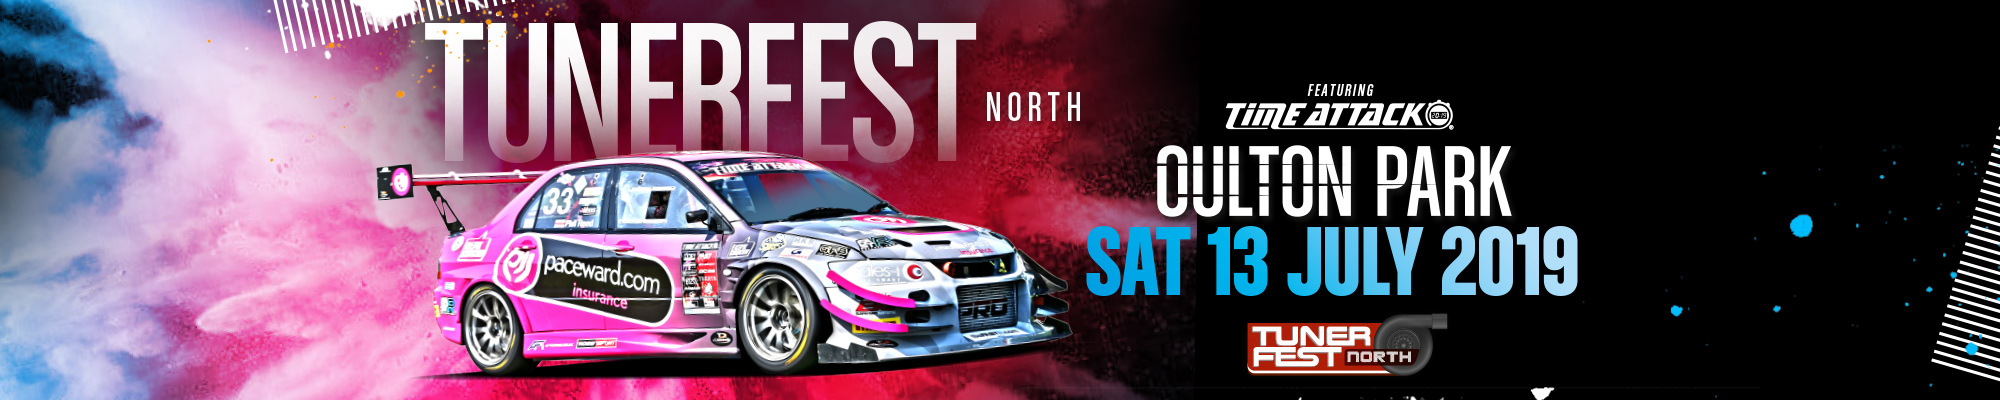 Tunerfest North